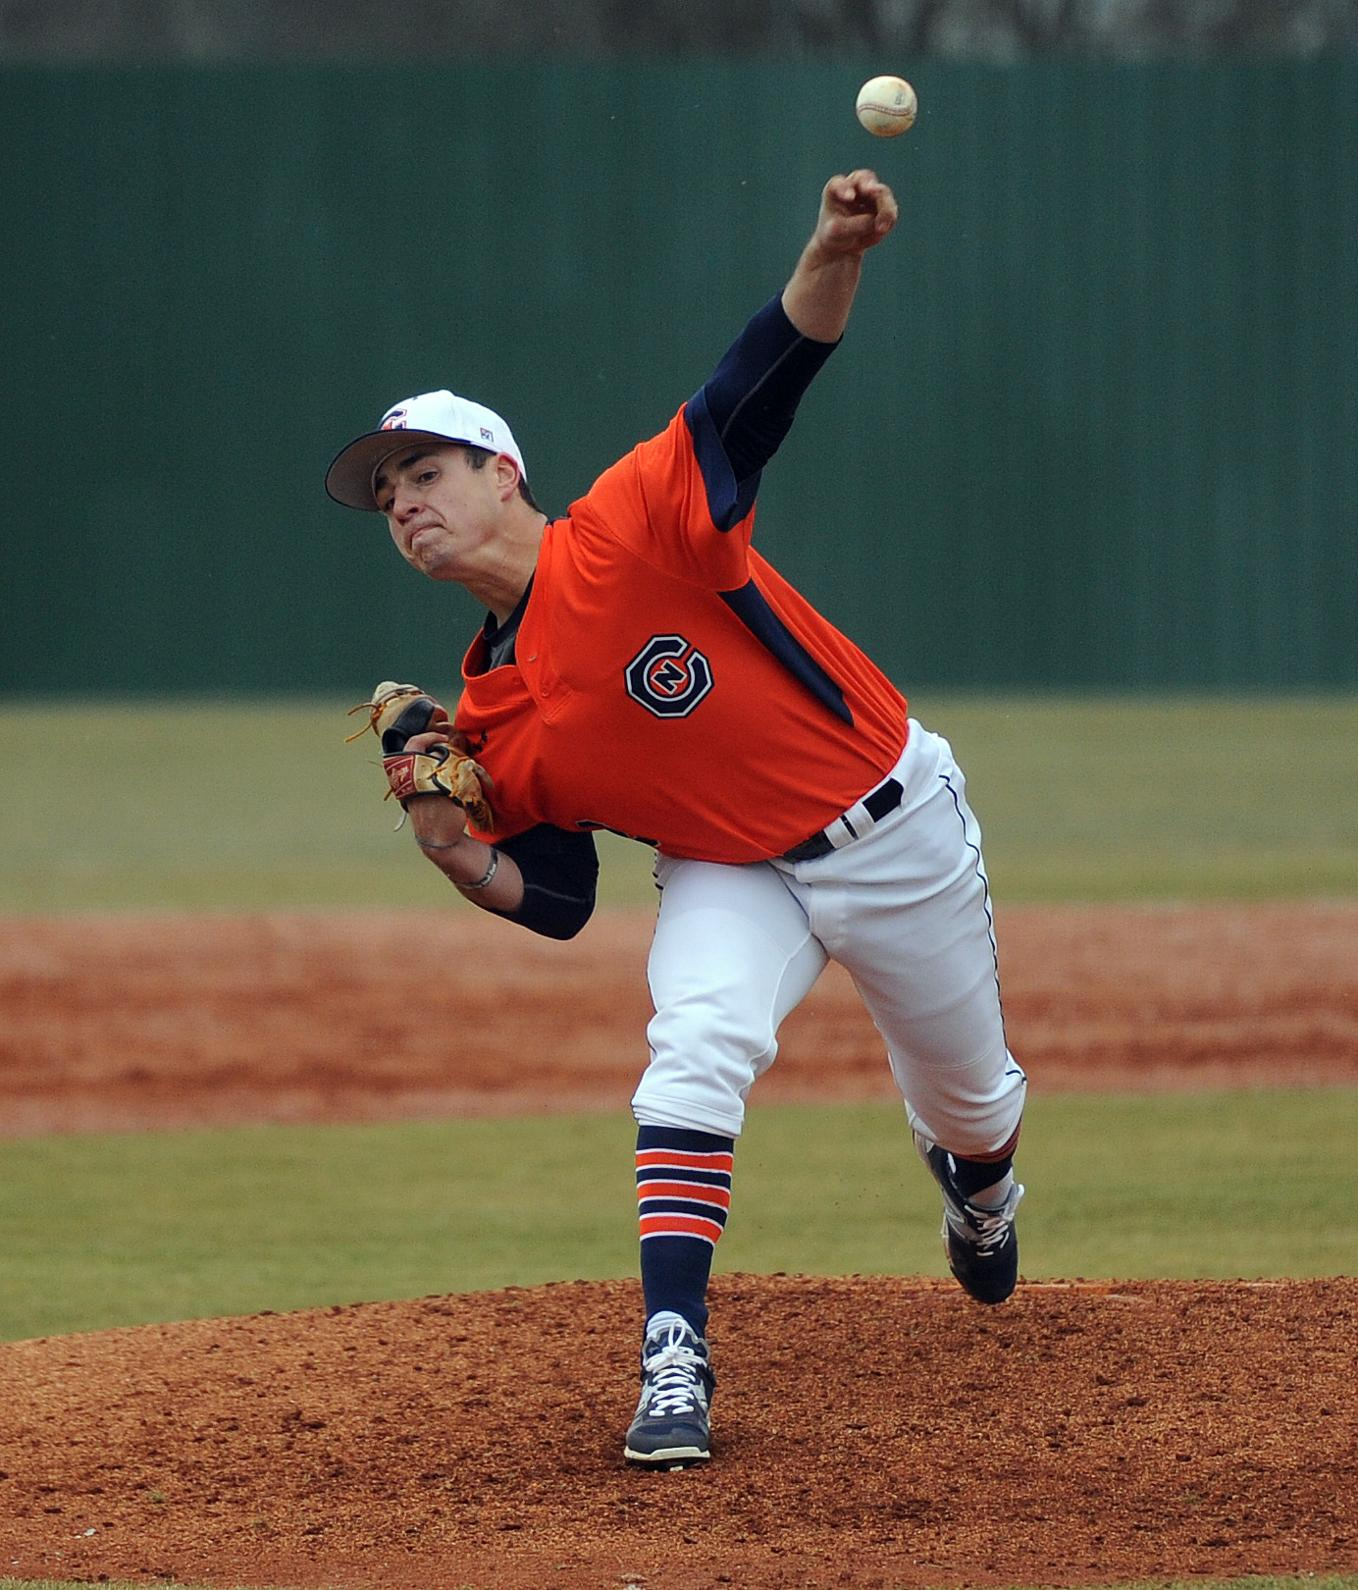 Apicella nets SAC Pitcher of the Week